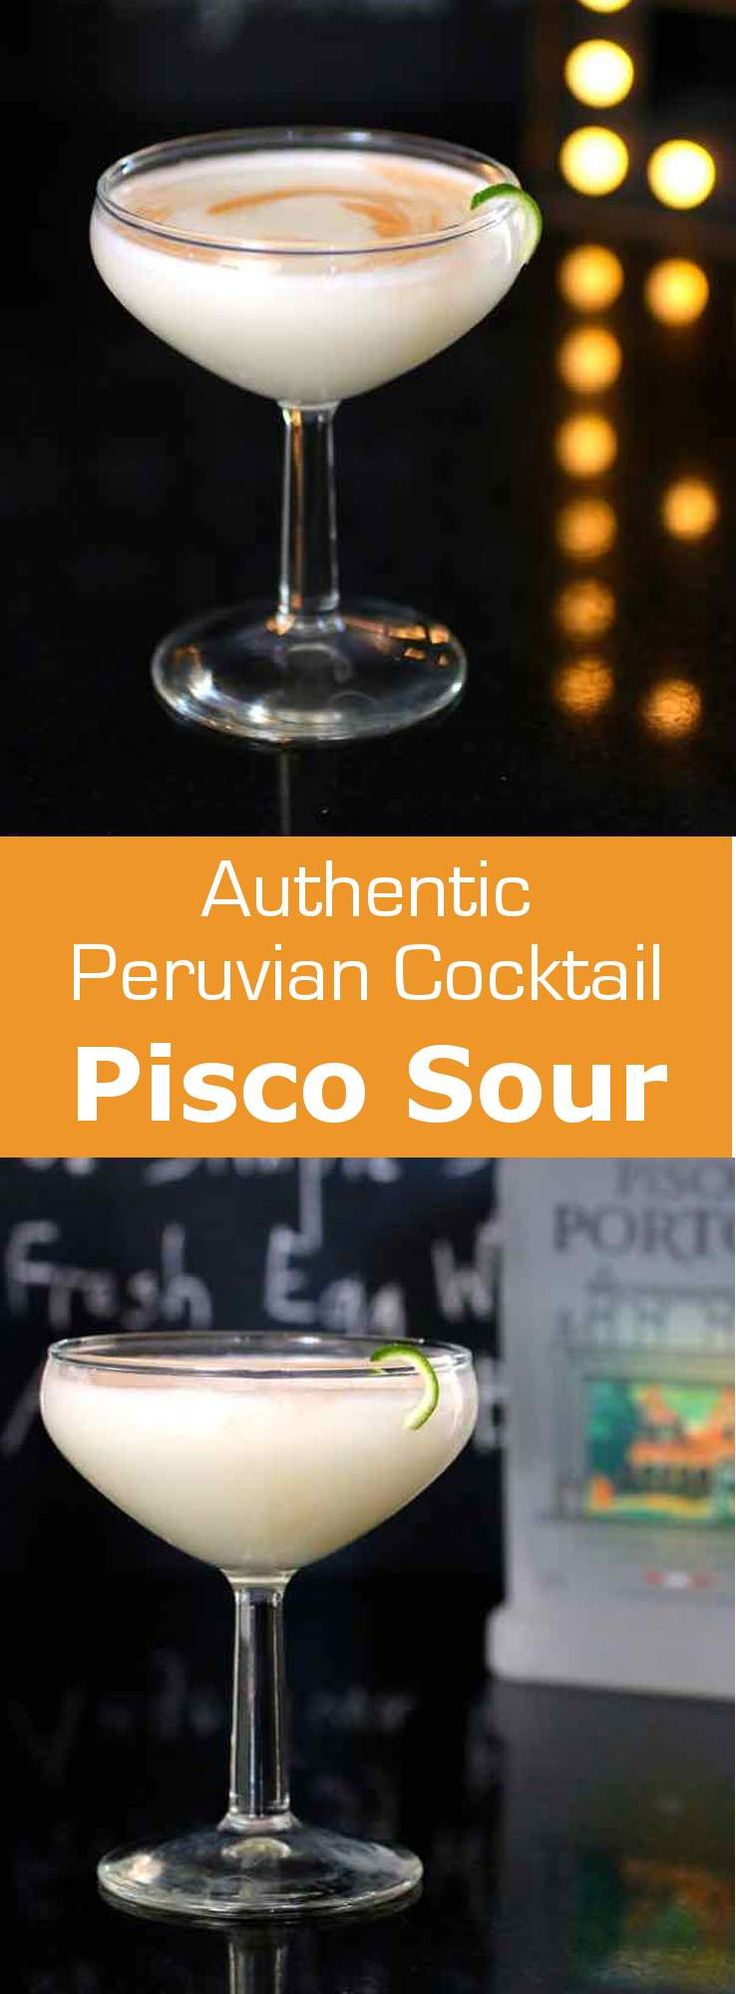 Pisco sour is a traditional Peruvian cocktail based on pisco, lime juice, syrup that is topped with a frothy egg white foam and Angostura bitters.…